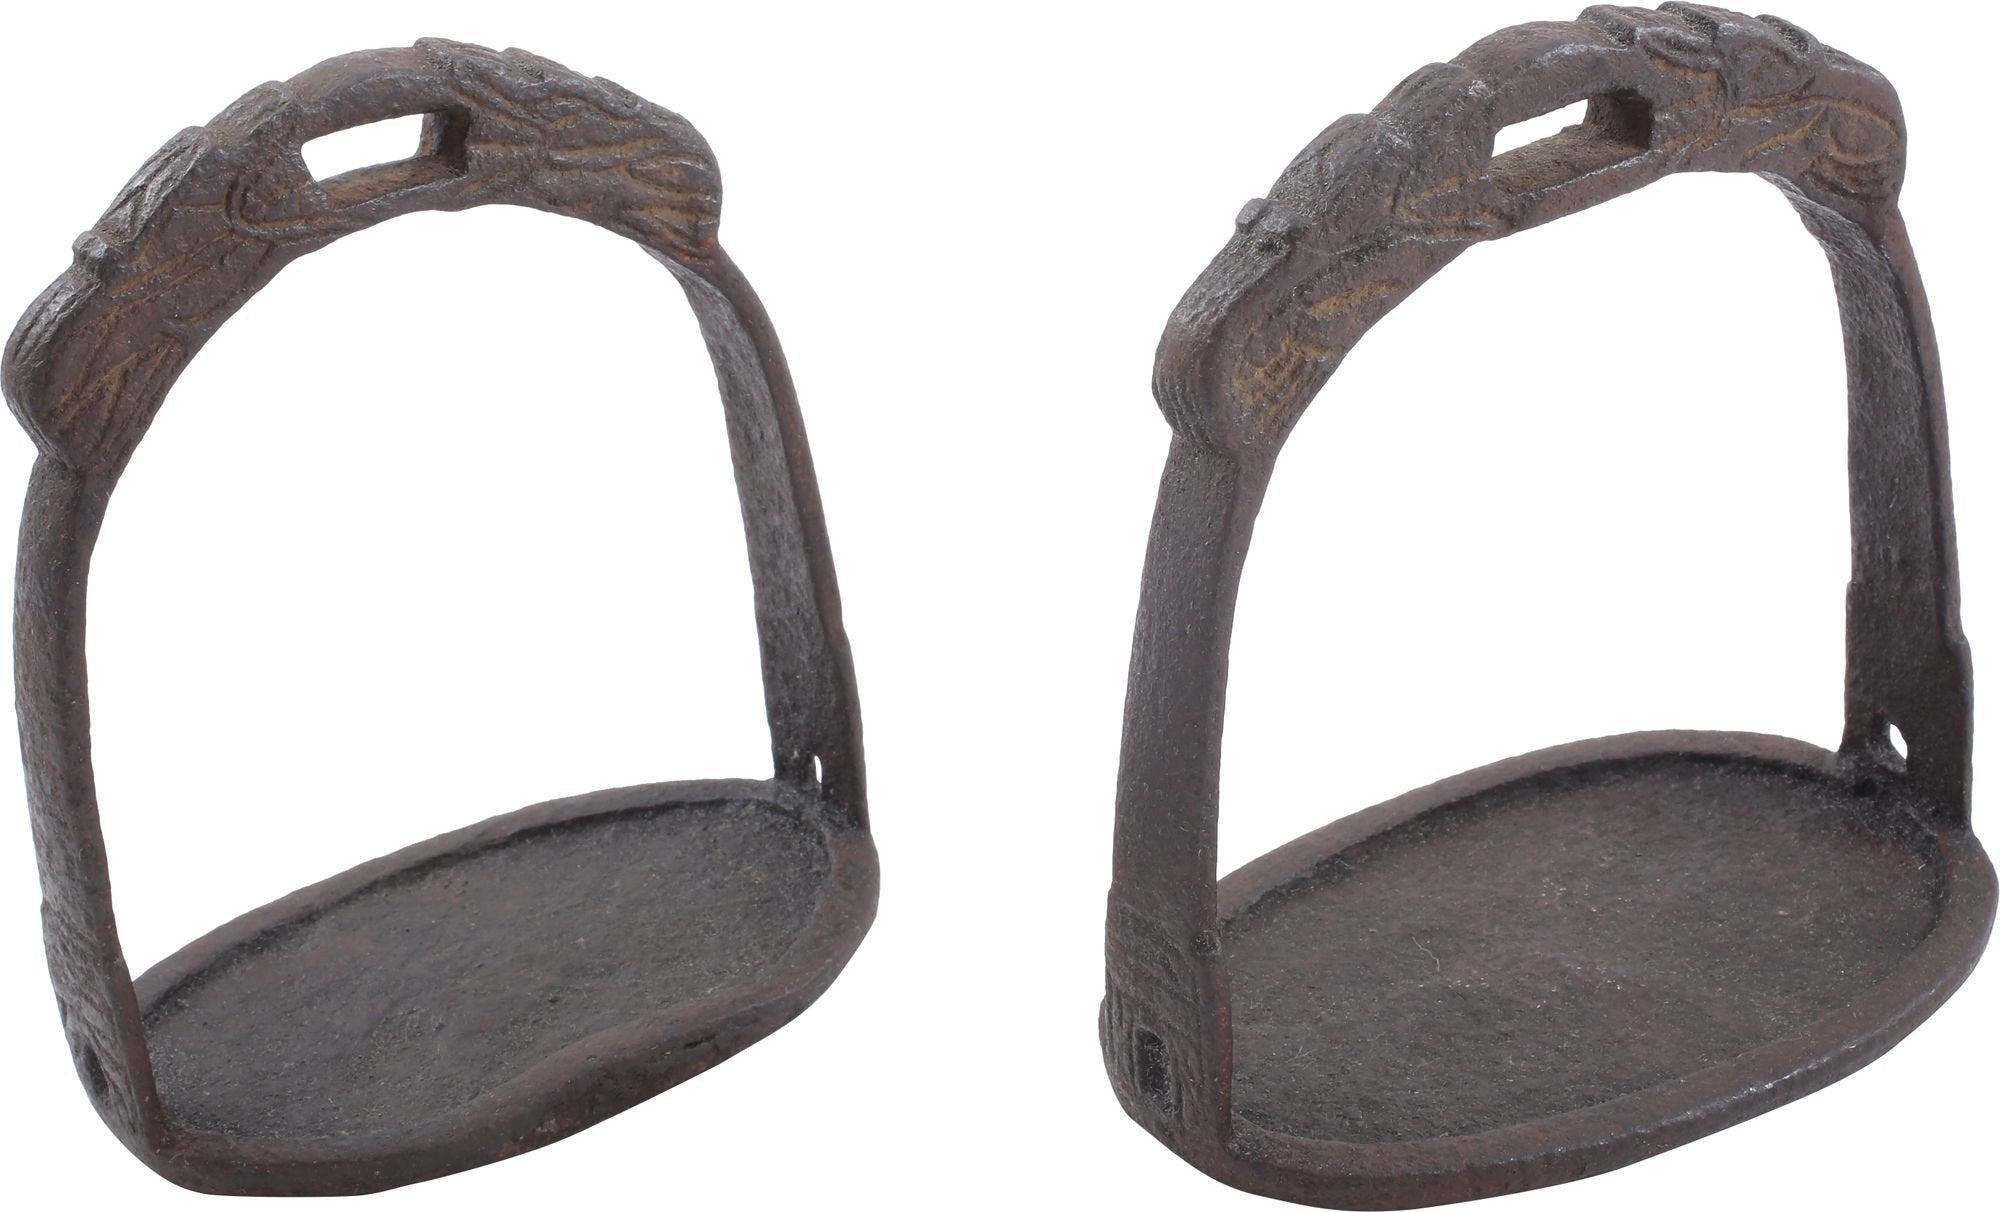 Pair Of Iron Chinese Stirrups - Product